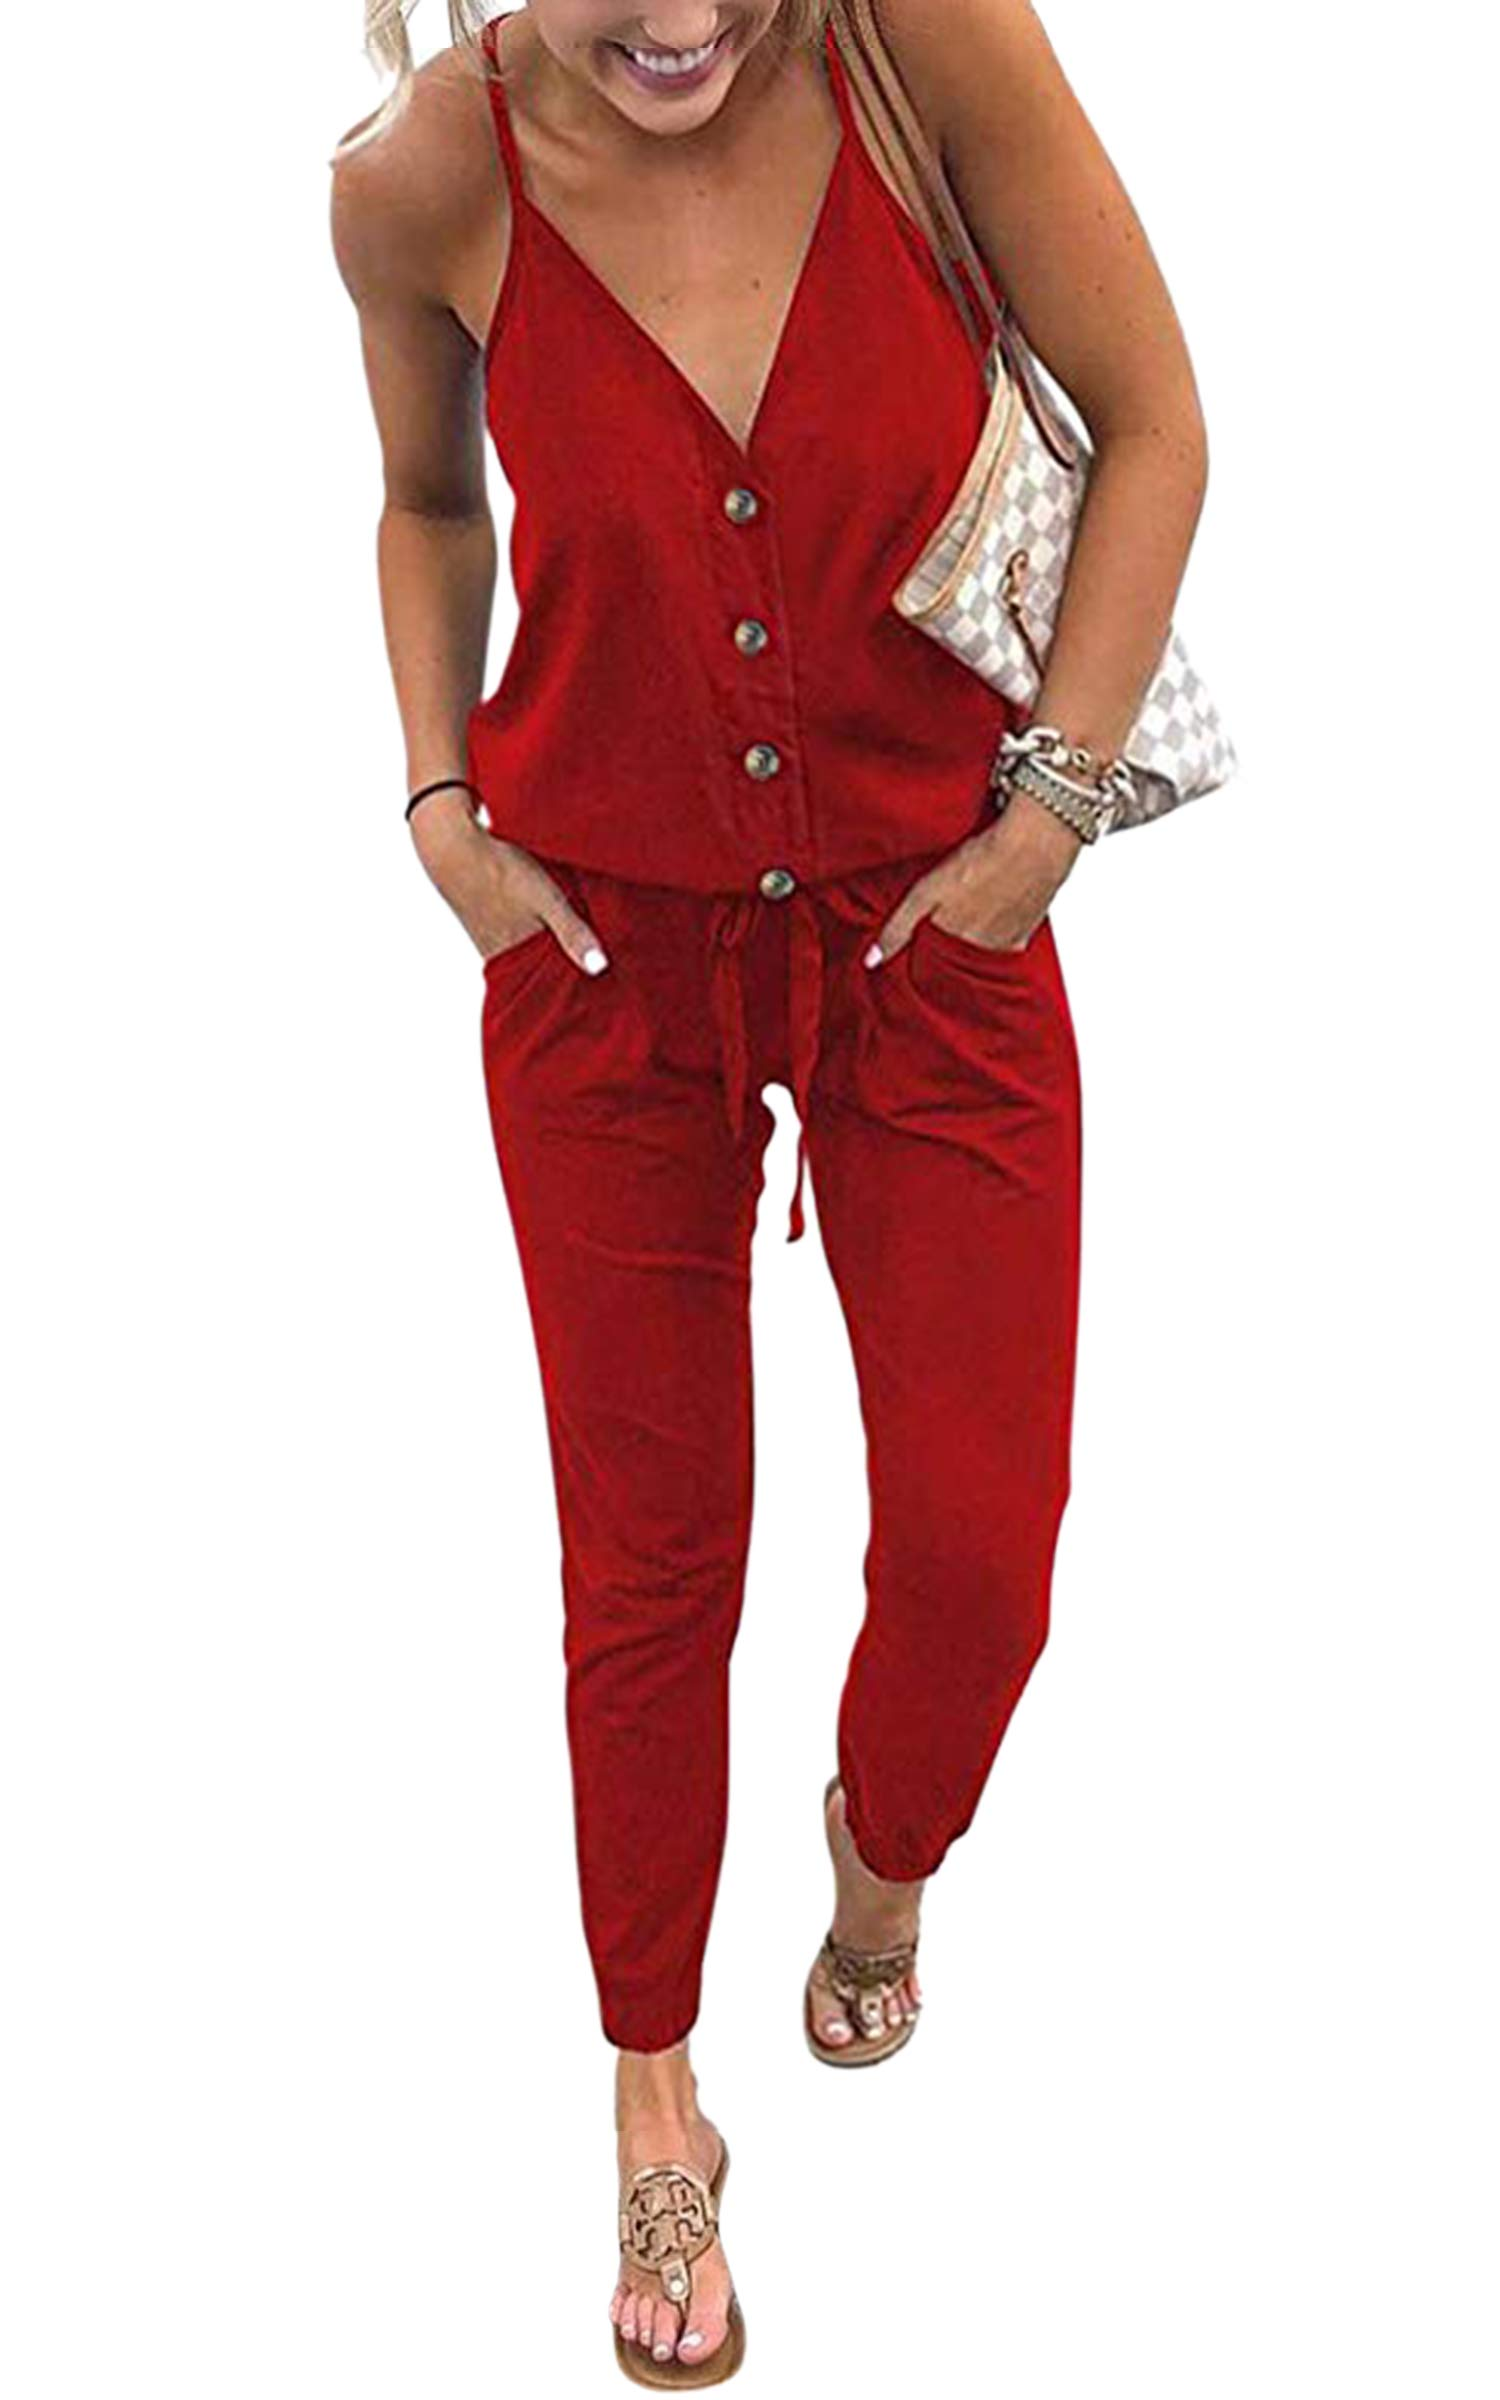 ECOWISH Women's V Neck Spaghetti Strap Drawstring Waisted Long Pants Jumpsuit Rompers 870 Red XL